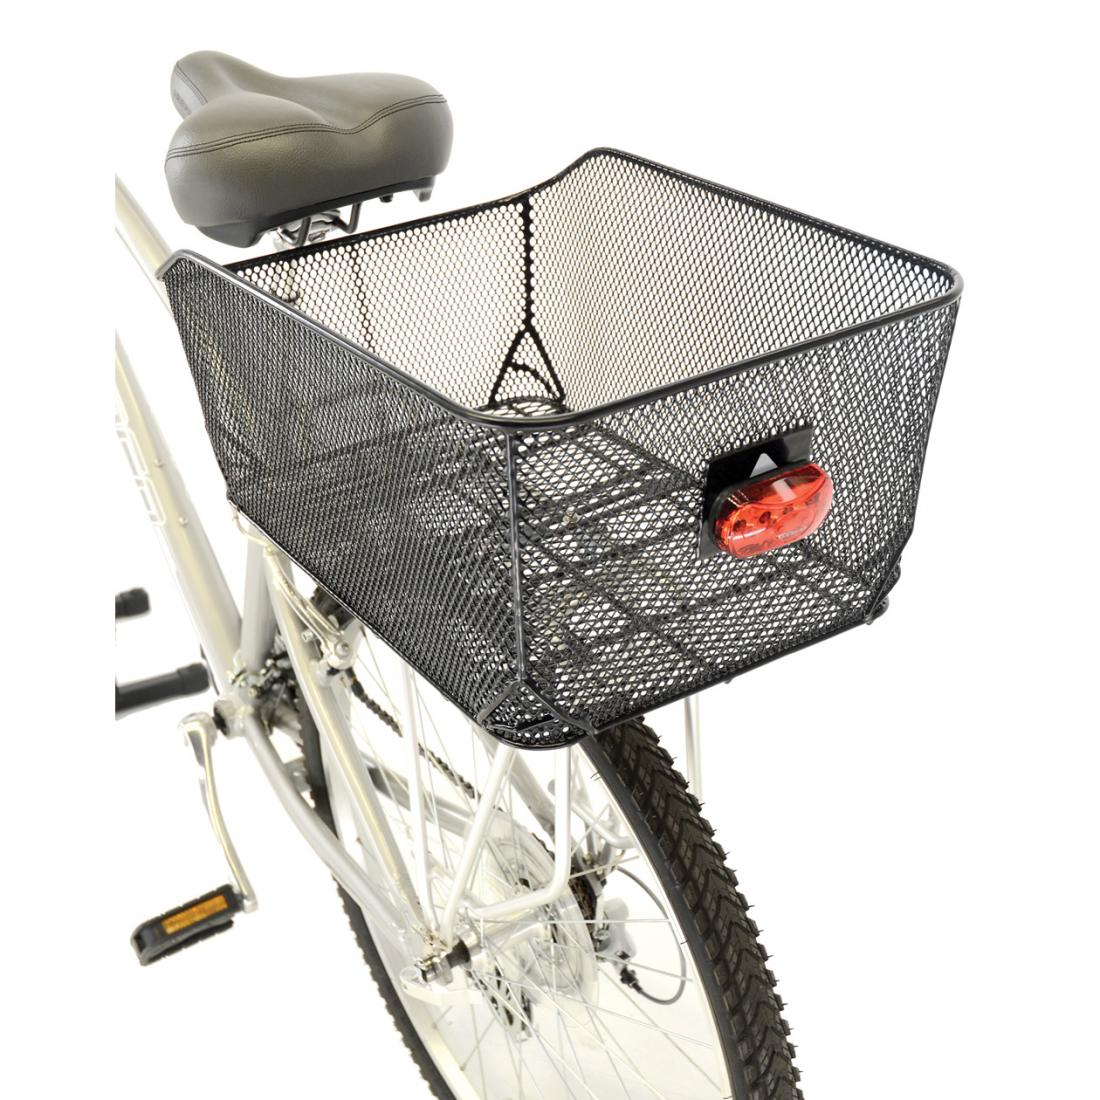 Bike basket attached to cream coloured bike